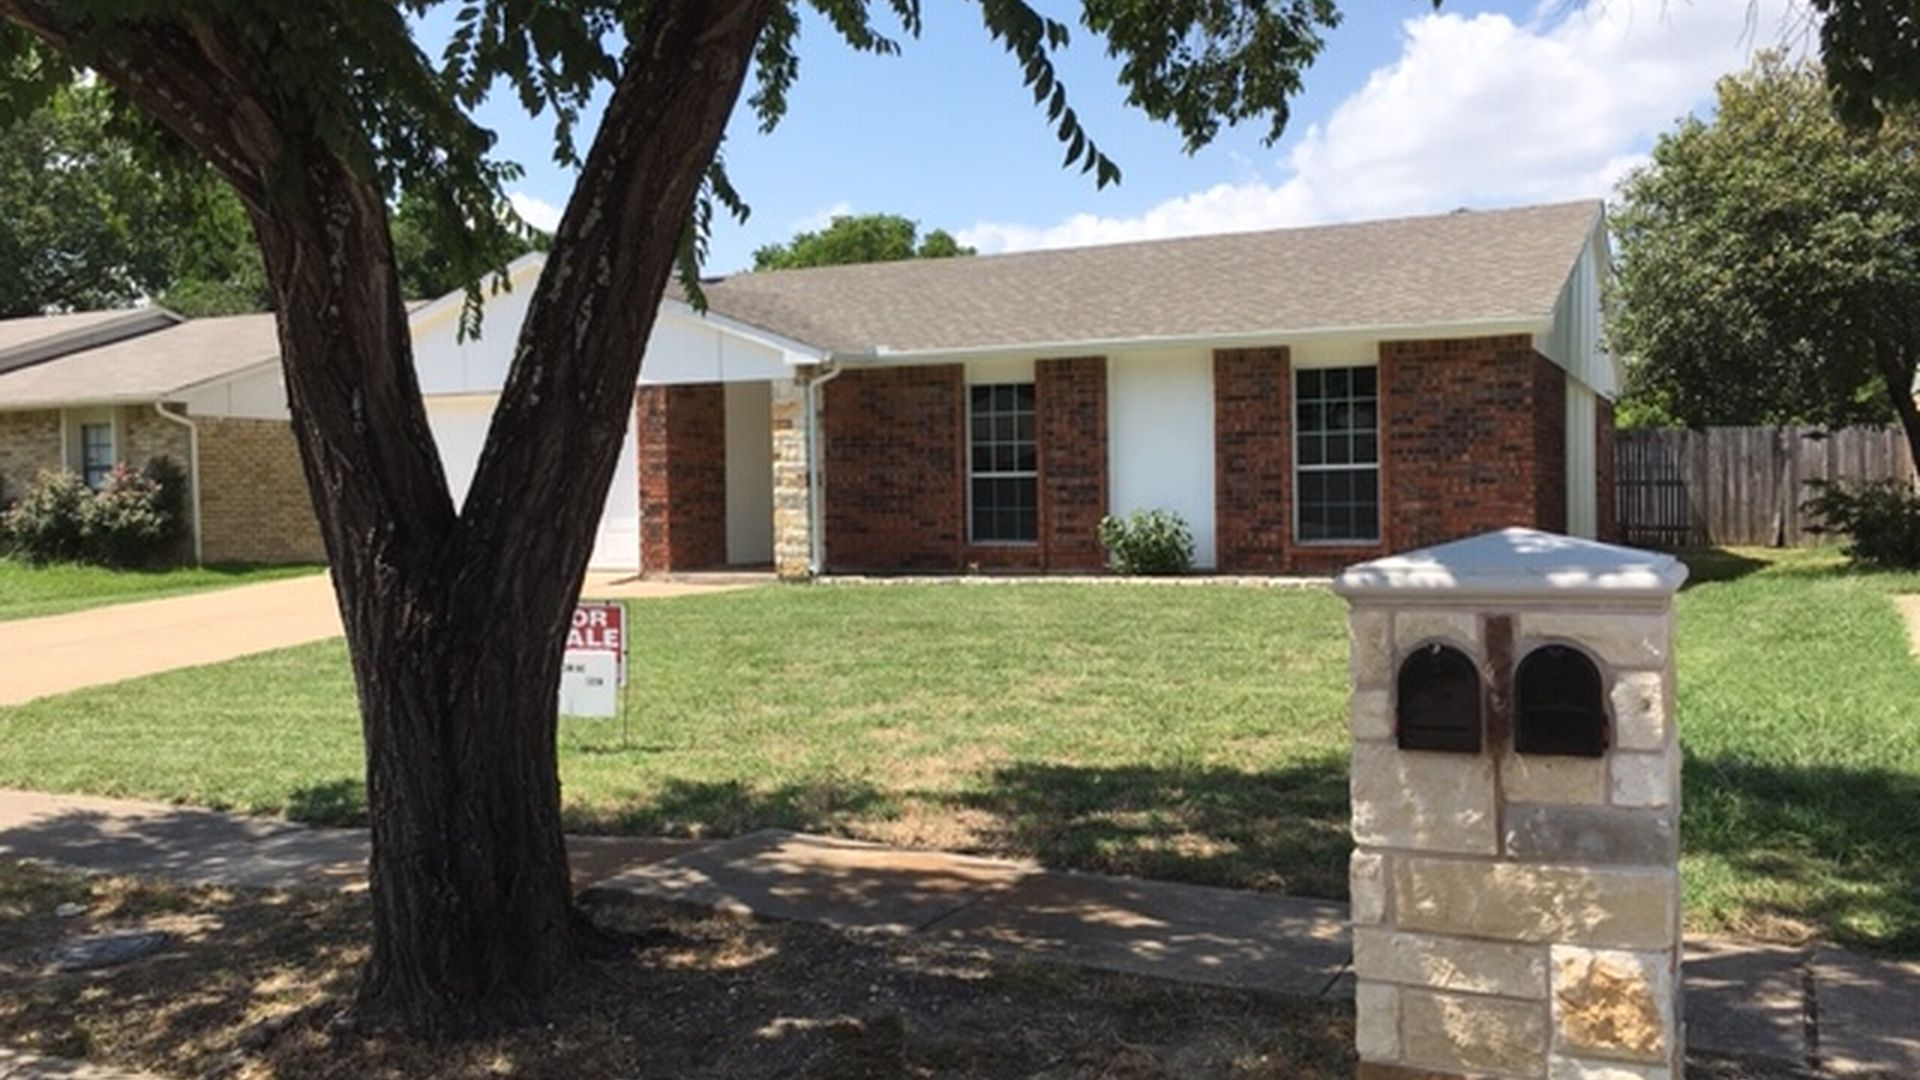 Astonishing Grand Prairie Tx For Sale By Owner Fsbo 13 Homes Zillow Complete Home Design Collection Papxelindsey Bellcom